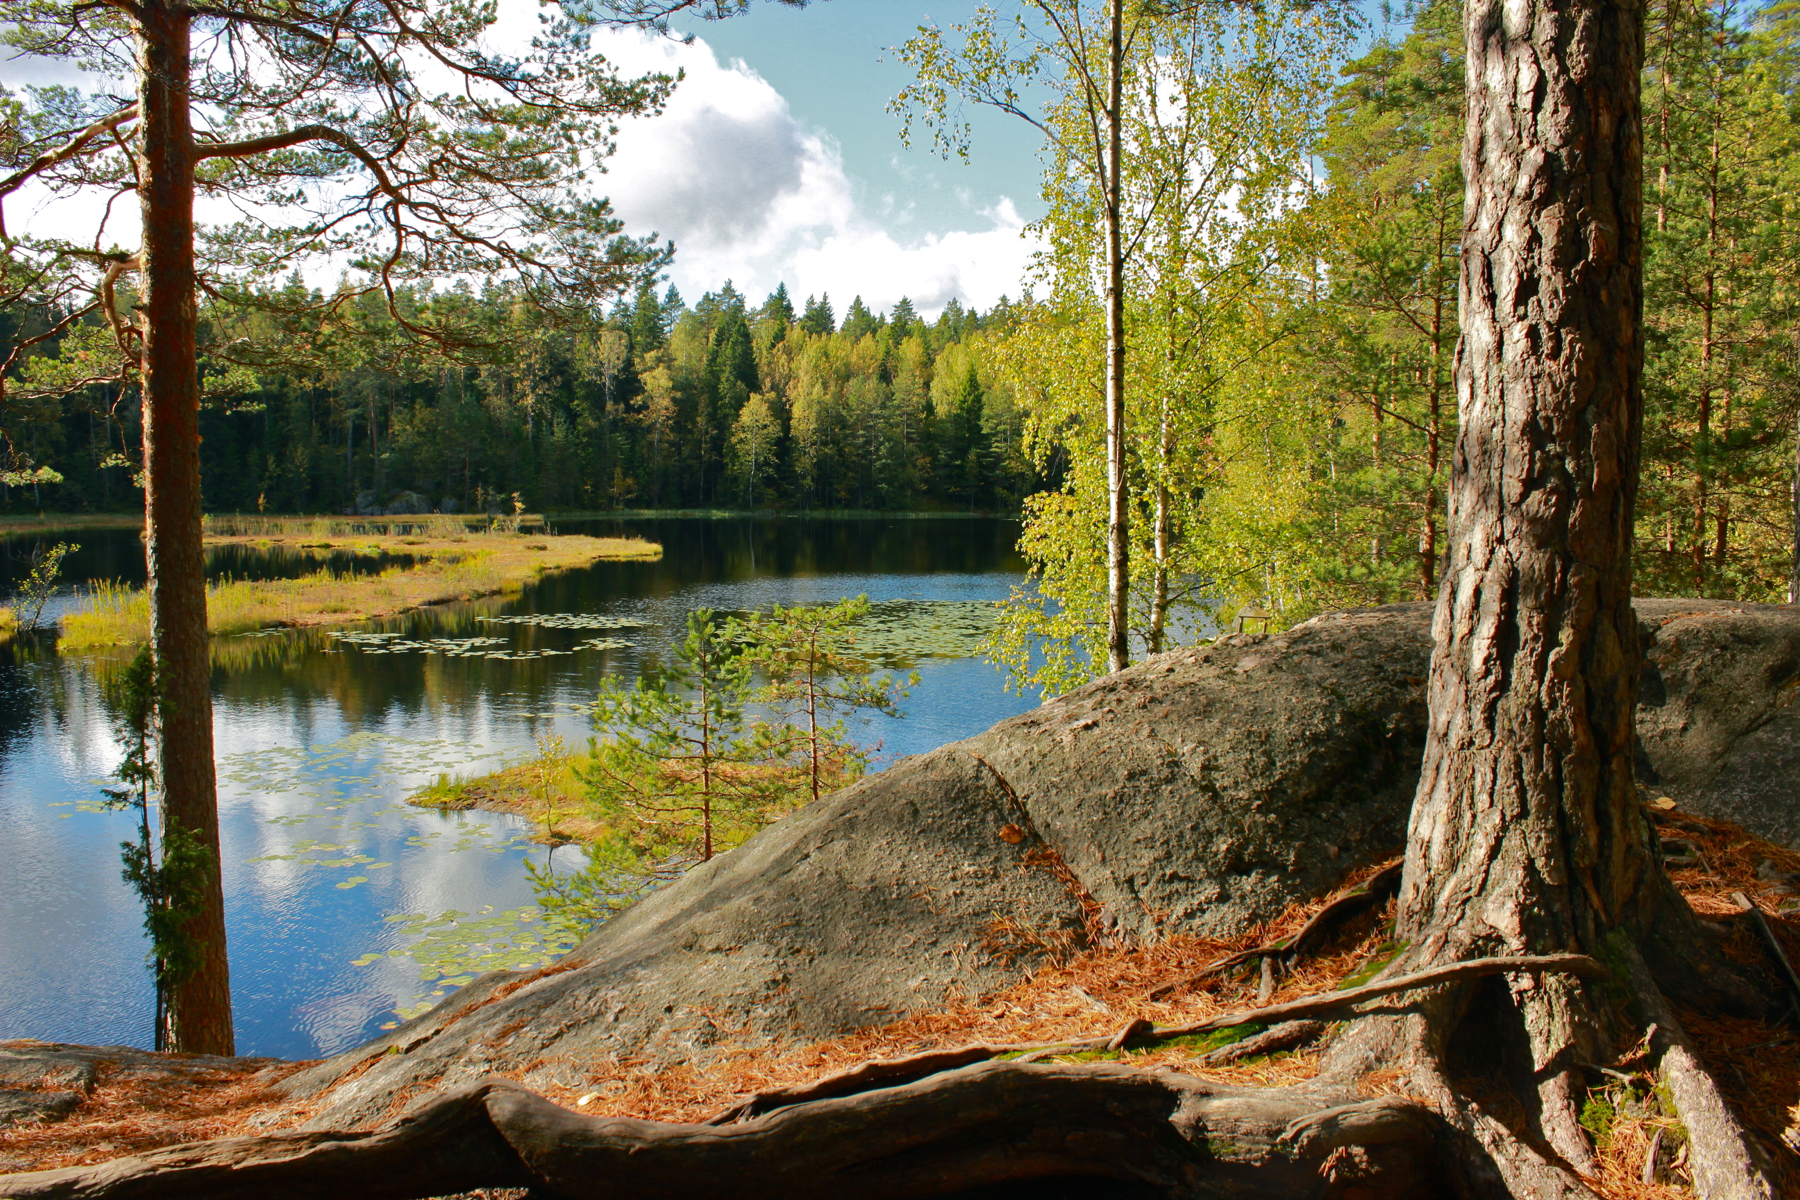 Cosa vedere a Helsinki, Nuuksio National Park